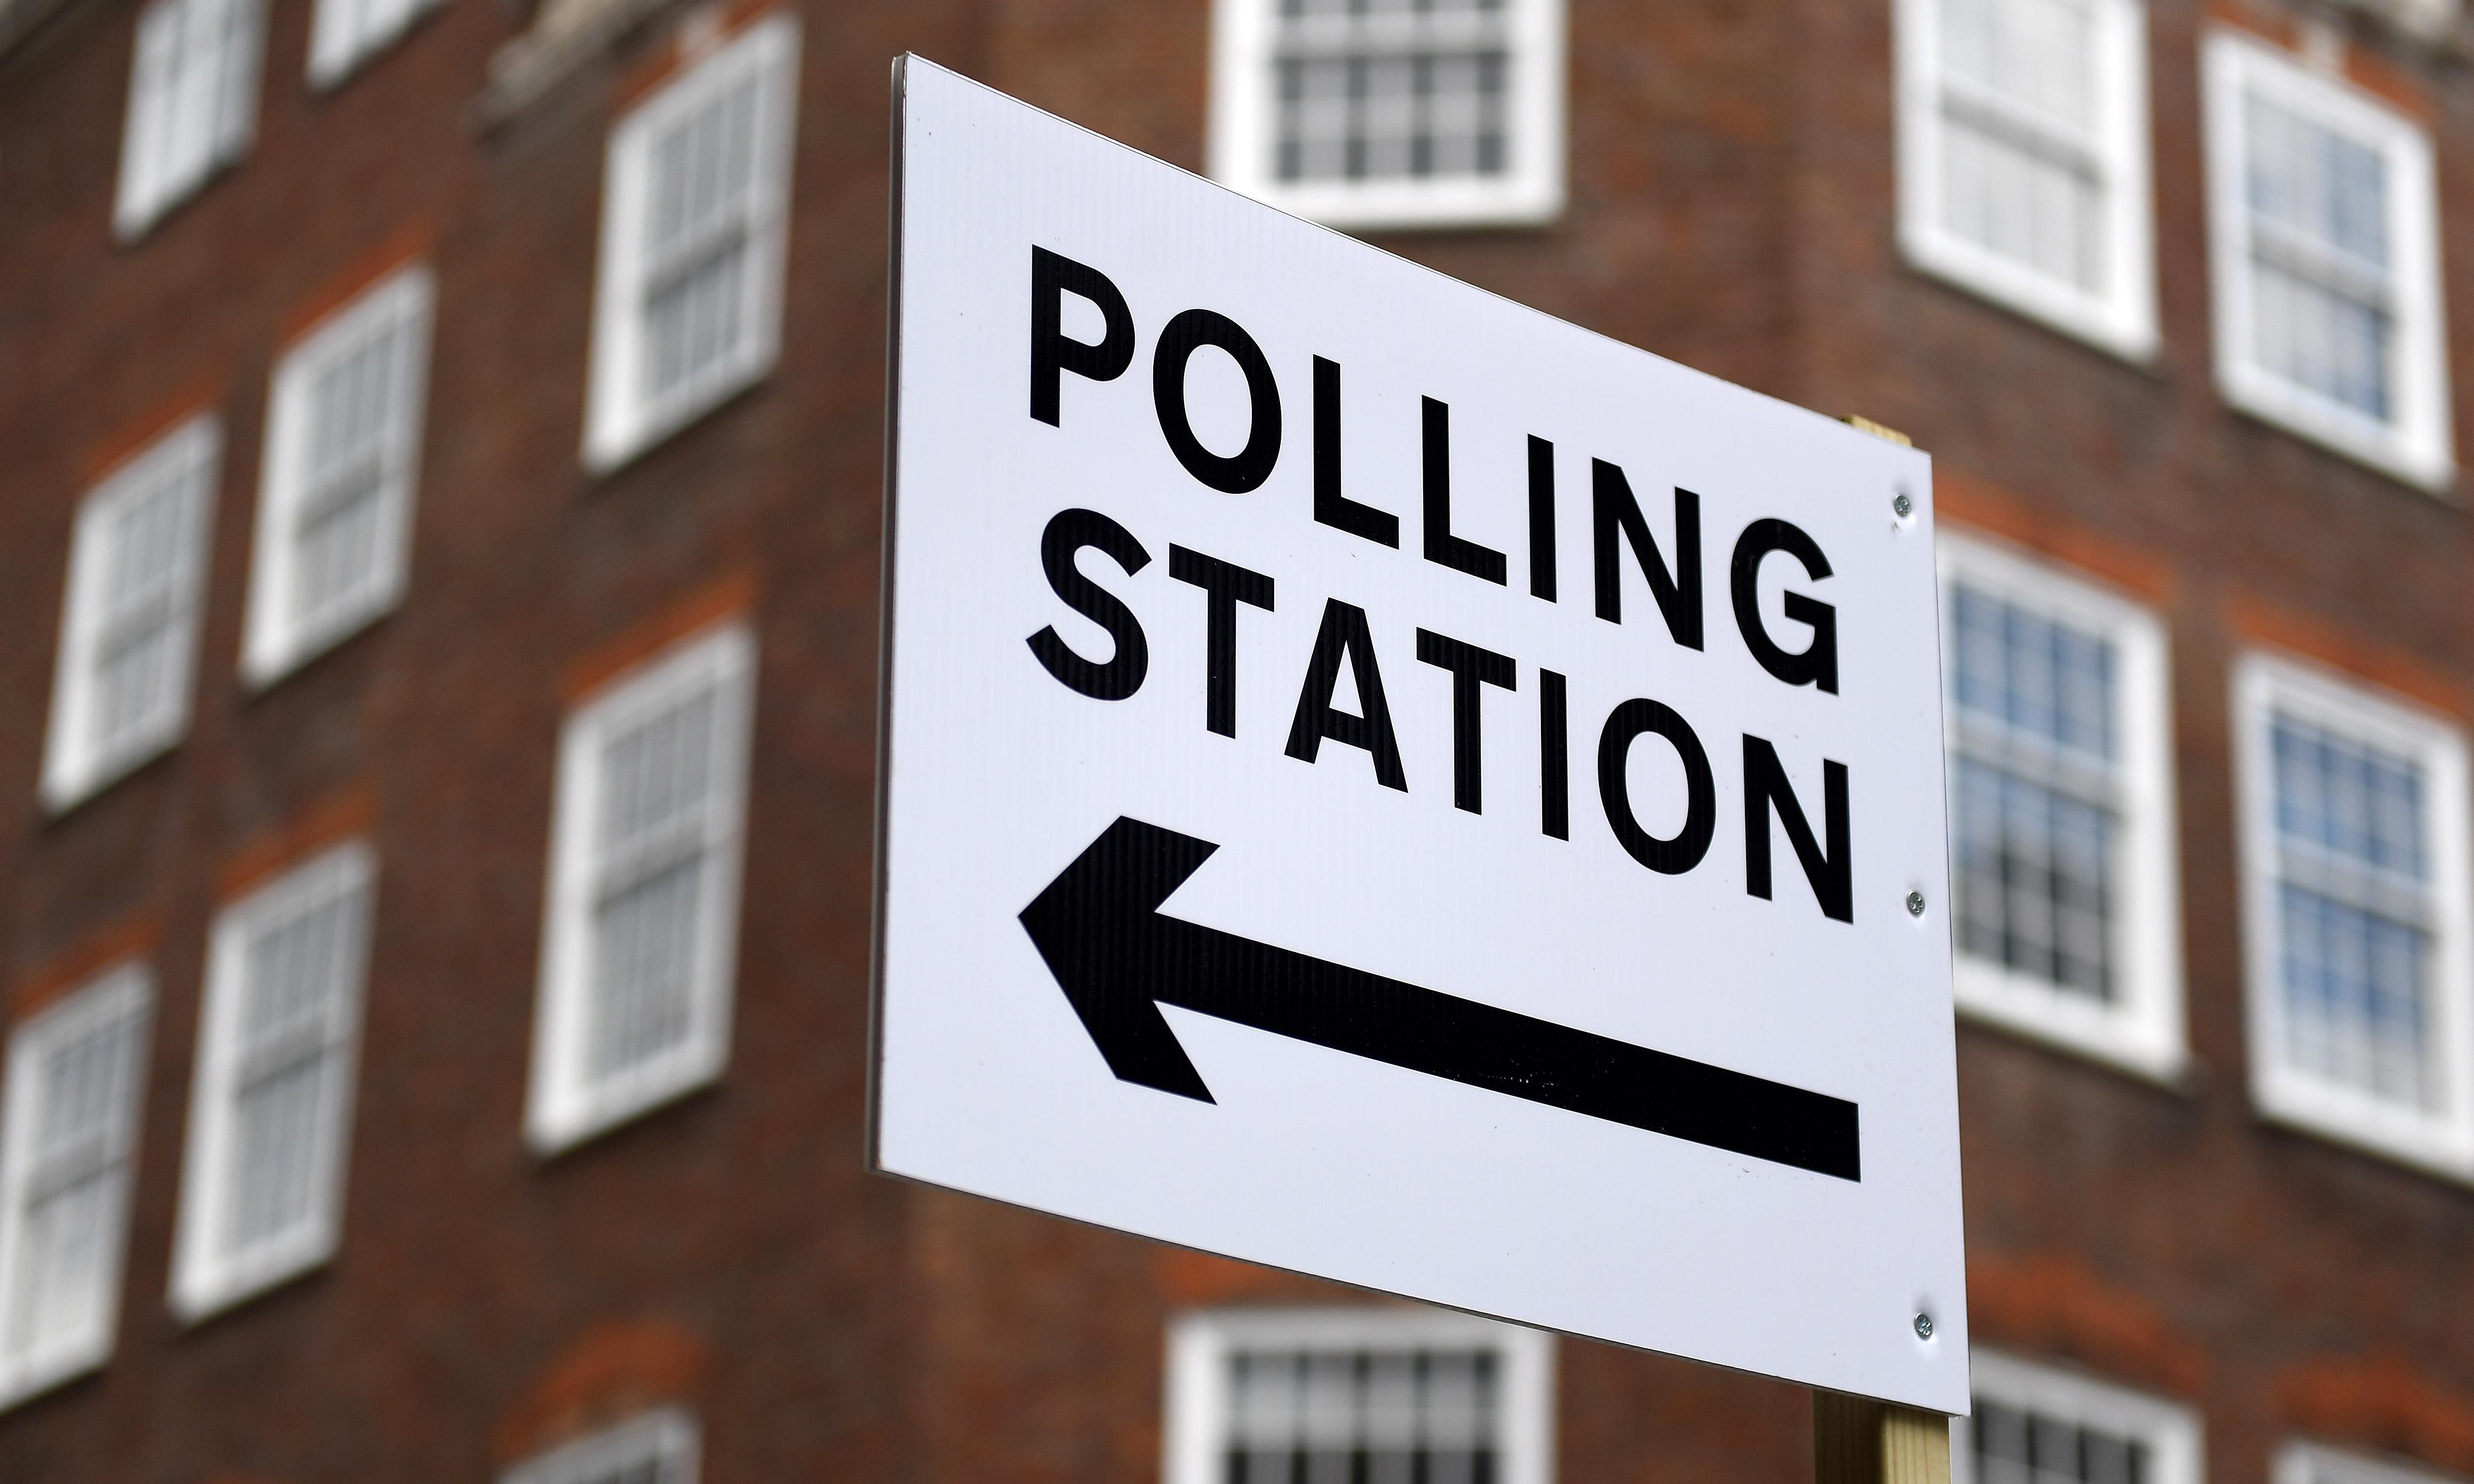 What's happening where you are on polling day?